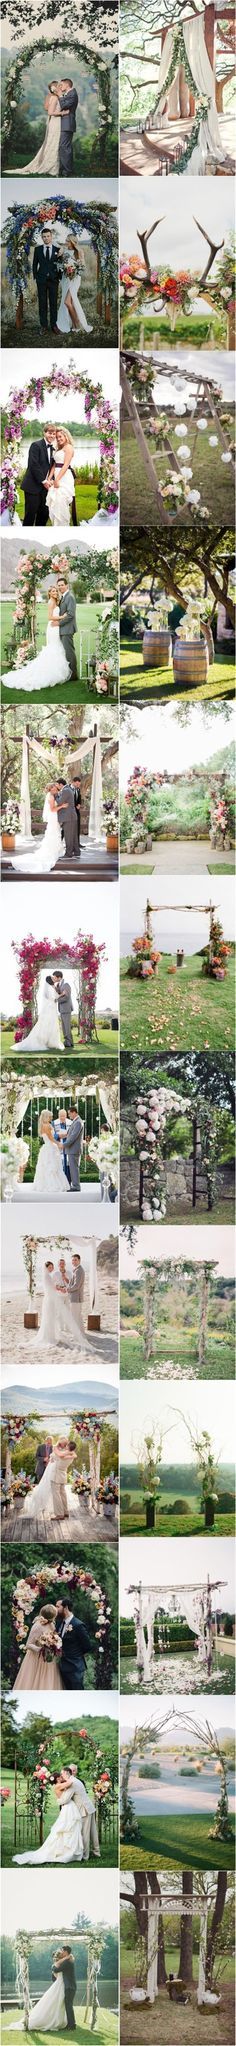 Top 25 Wedding Arch Decoration Ideas- Floral Wedding Arches